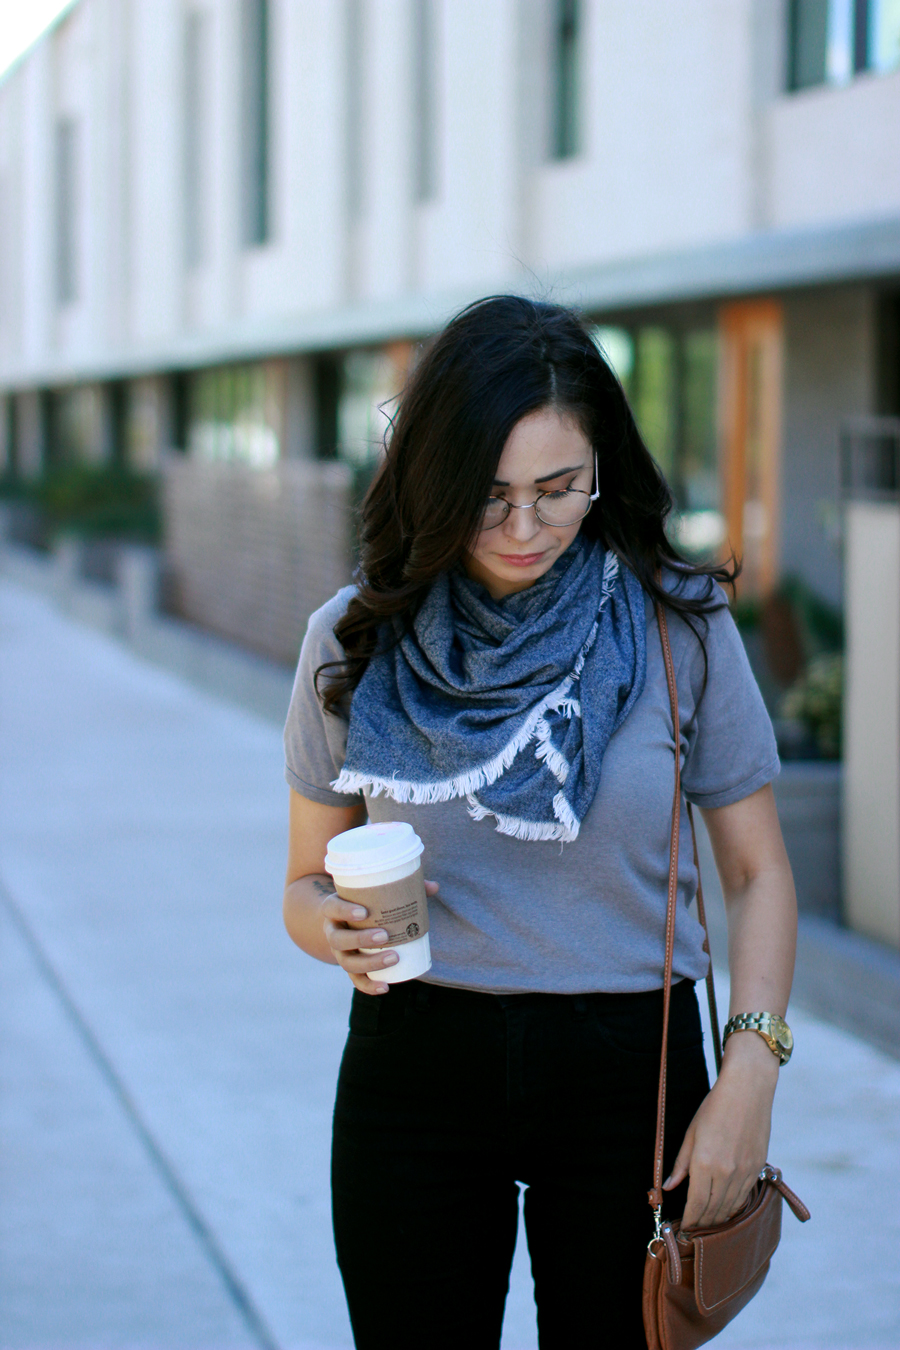 FIXIN-TO-THRILL-BANANA-REPUBLIC-TEE-CREW-NECK-CASUAL-TREND-FALL-OCTOBER-ATX-AUSTIN-STYLE-BLOG-FW15-TRENDY-CHIC-GLAM-TEXAS-5